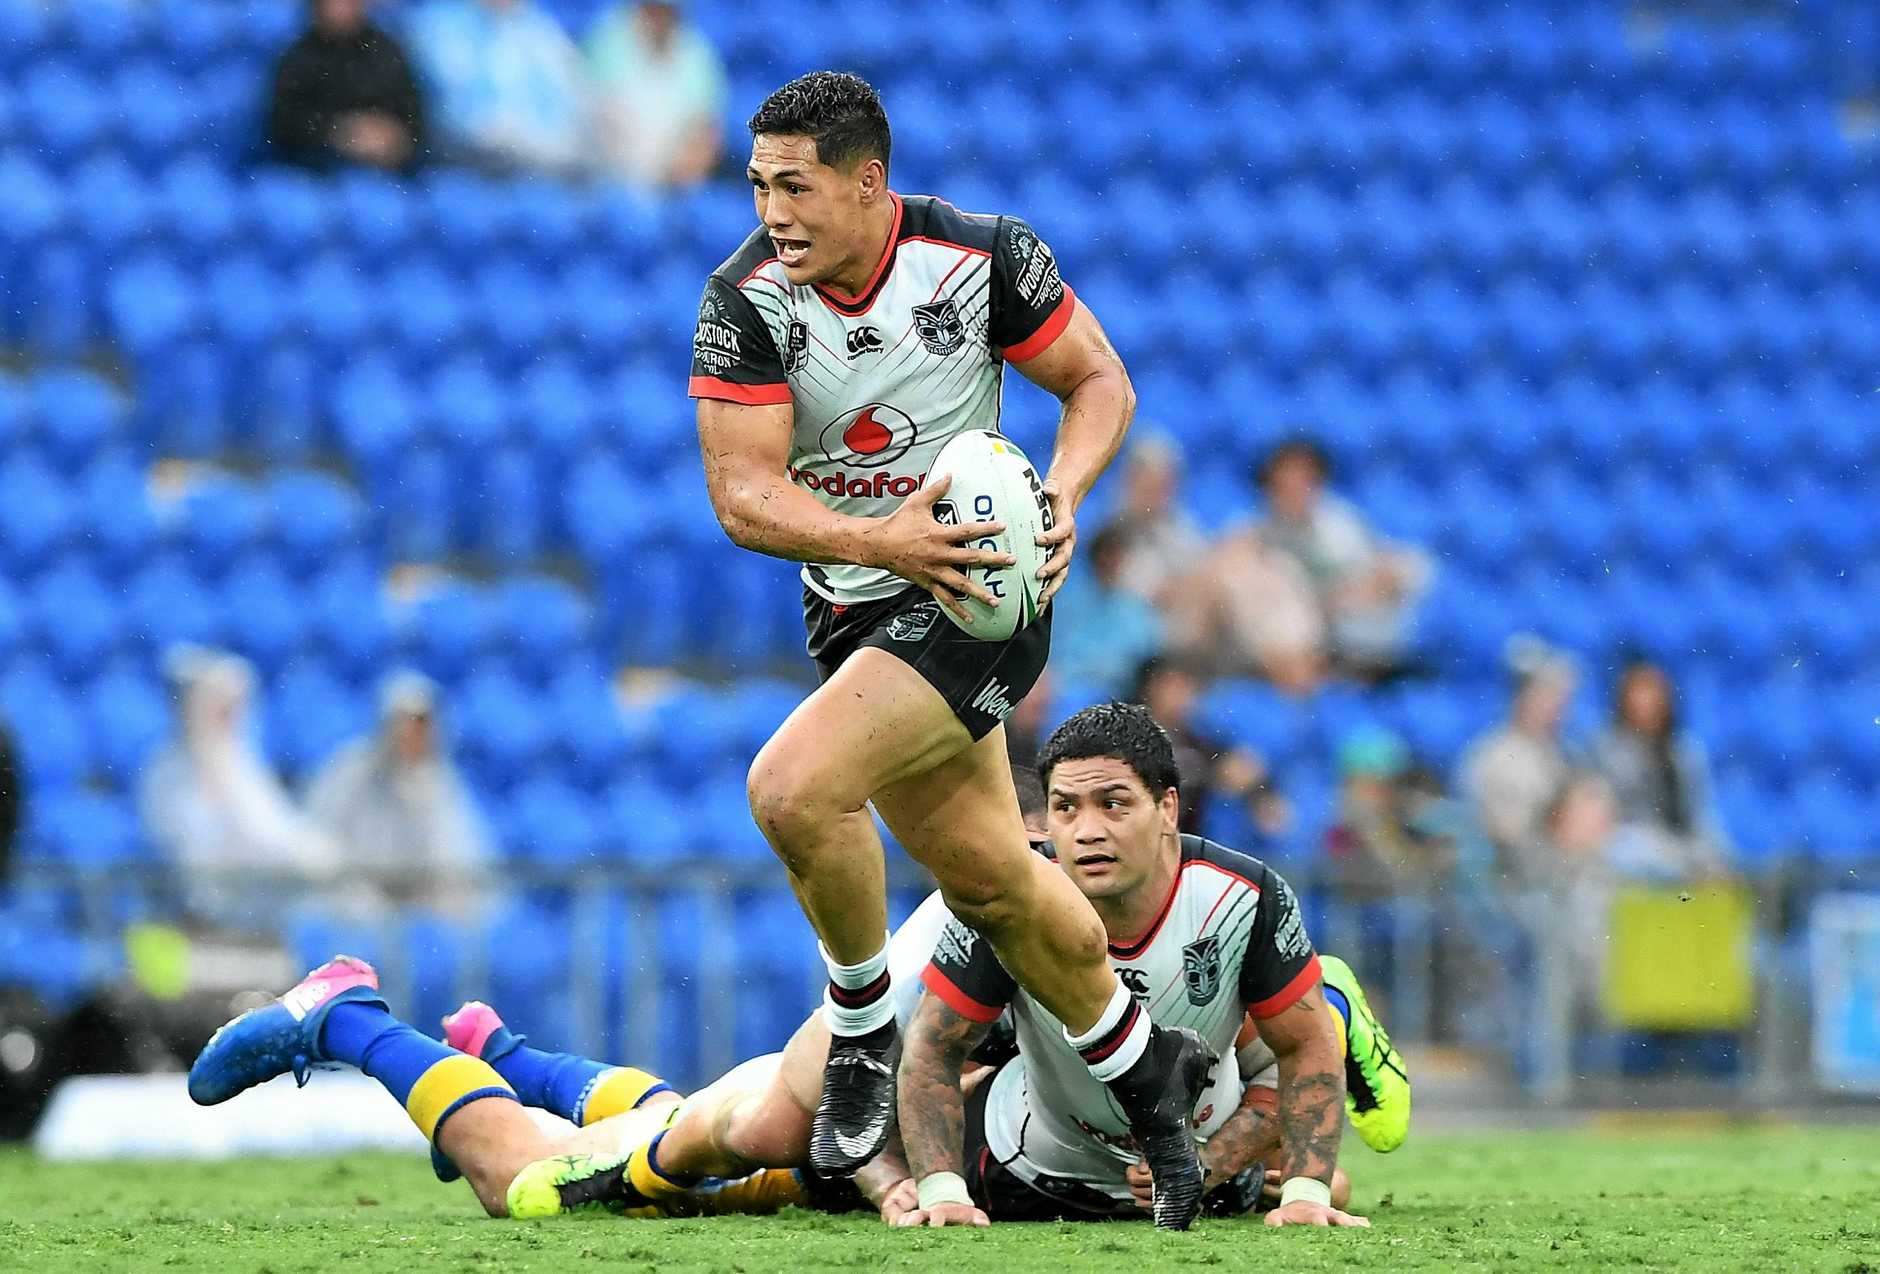 Roger Tuivasa-Sheck on the fly. (AAP Image/Dave Hunt)